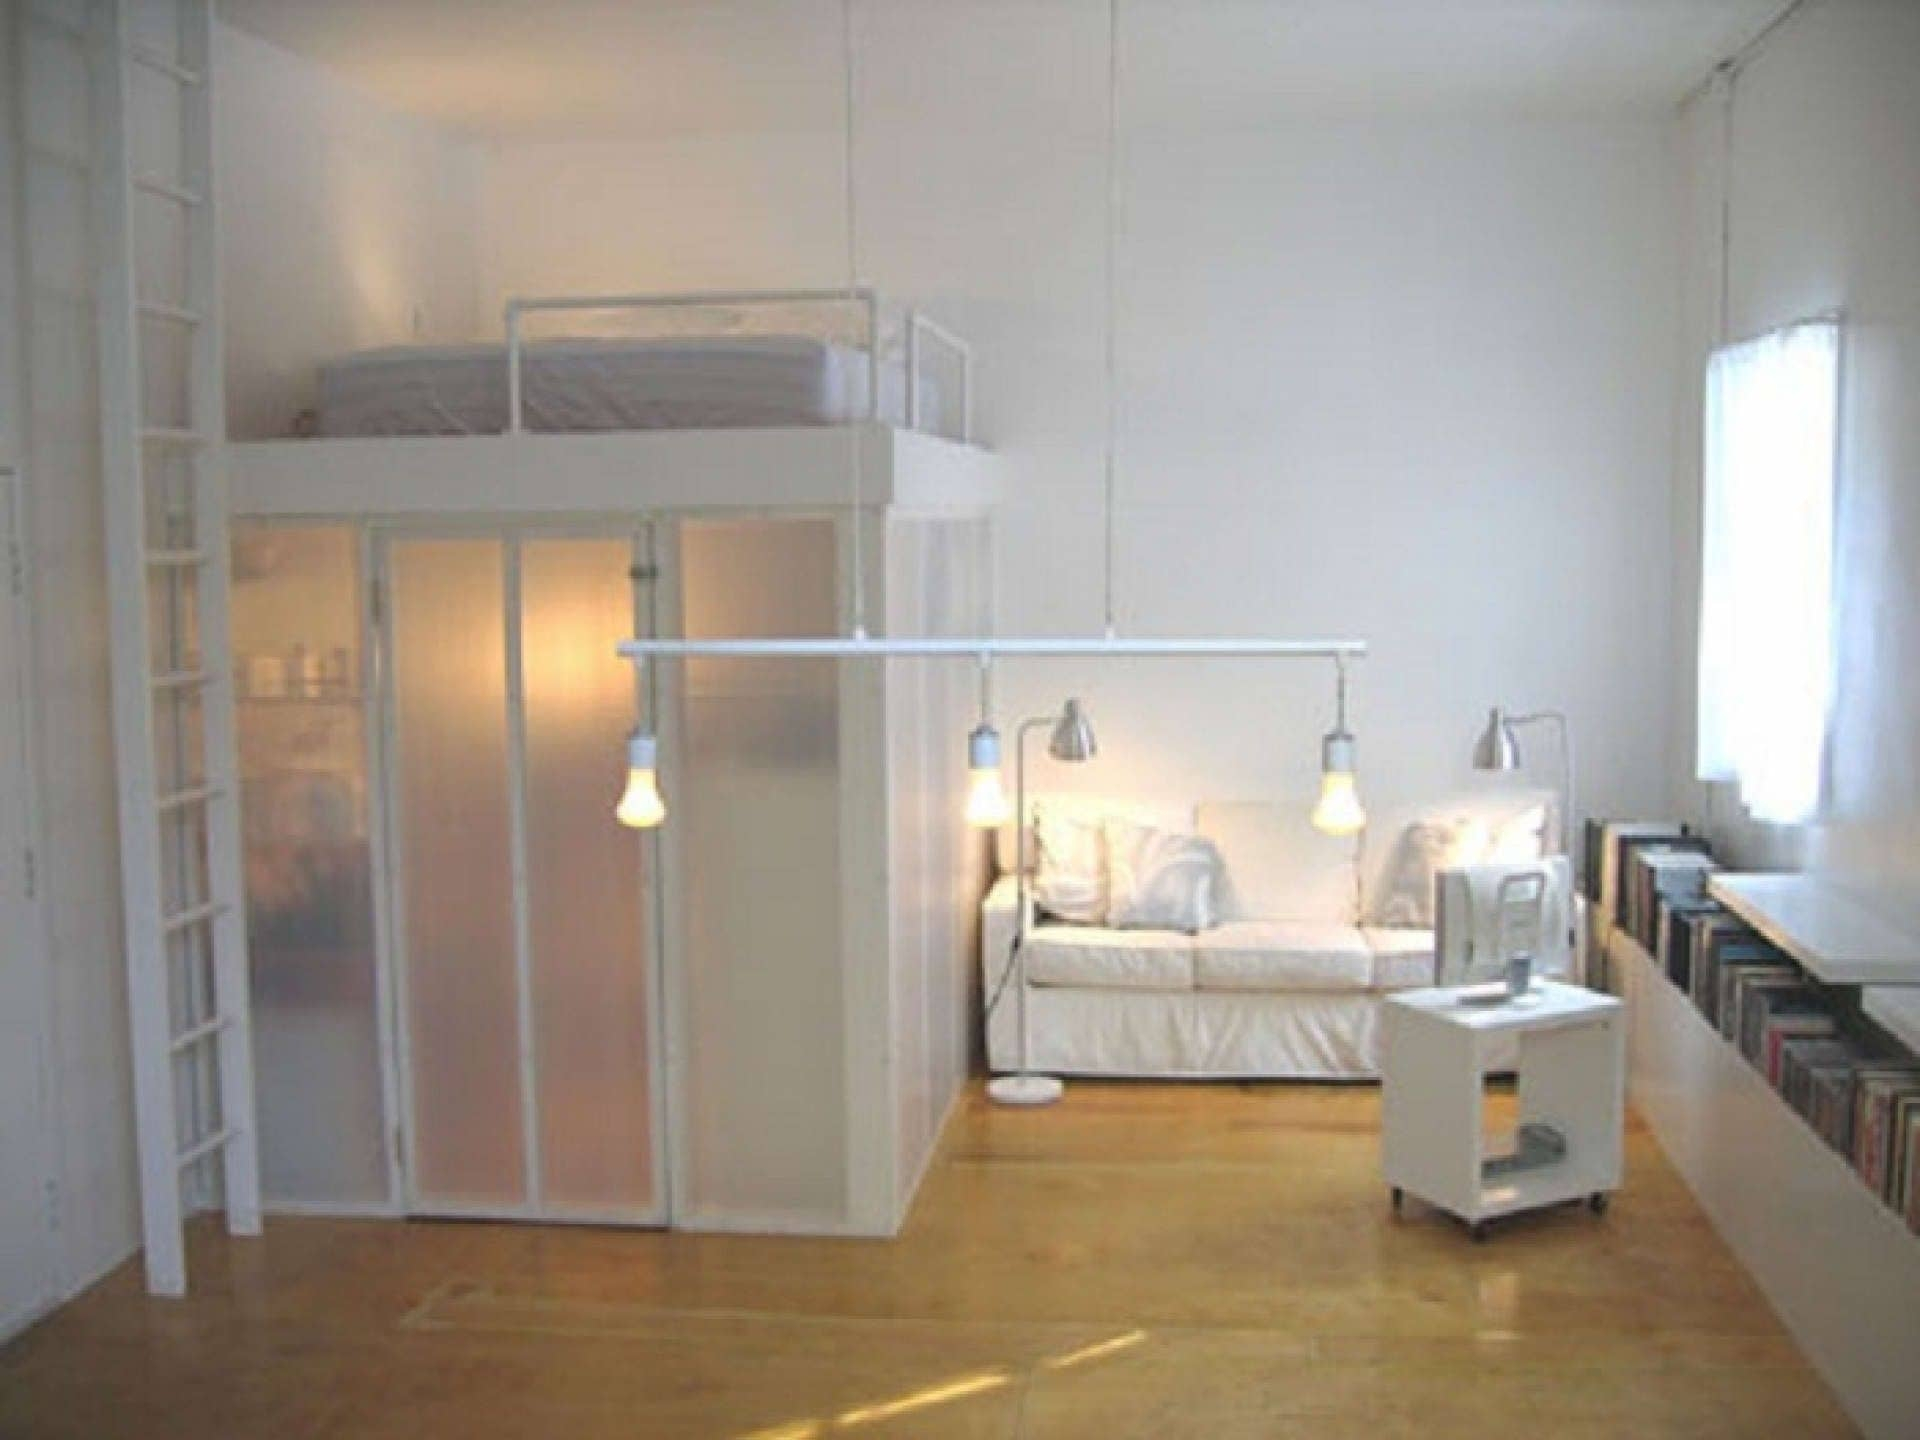 Beau This Project Features A Unique Loft Bed Idea, Which Located The Queen Bed  Above A Glazed Space, Which Can Be Used In Endless Ways   Either To Place  There A ...